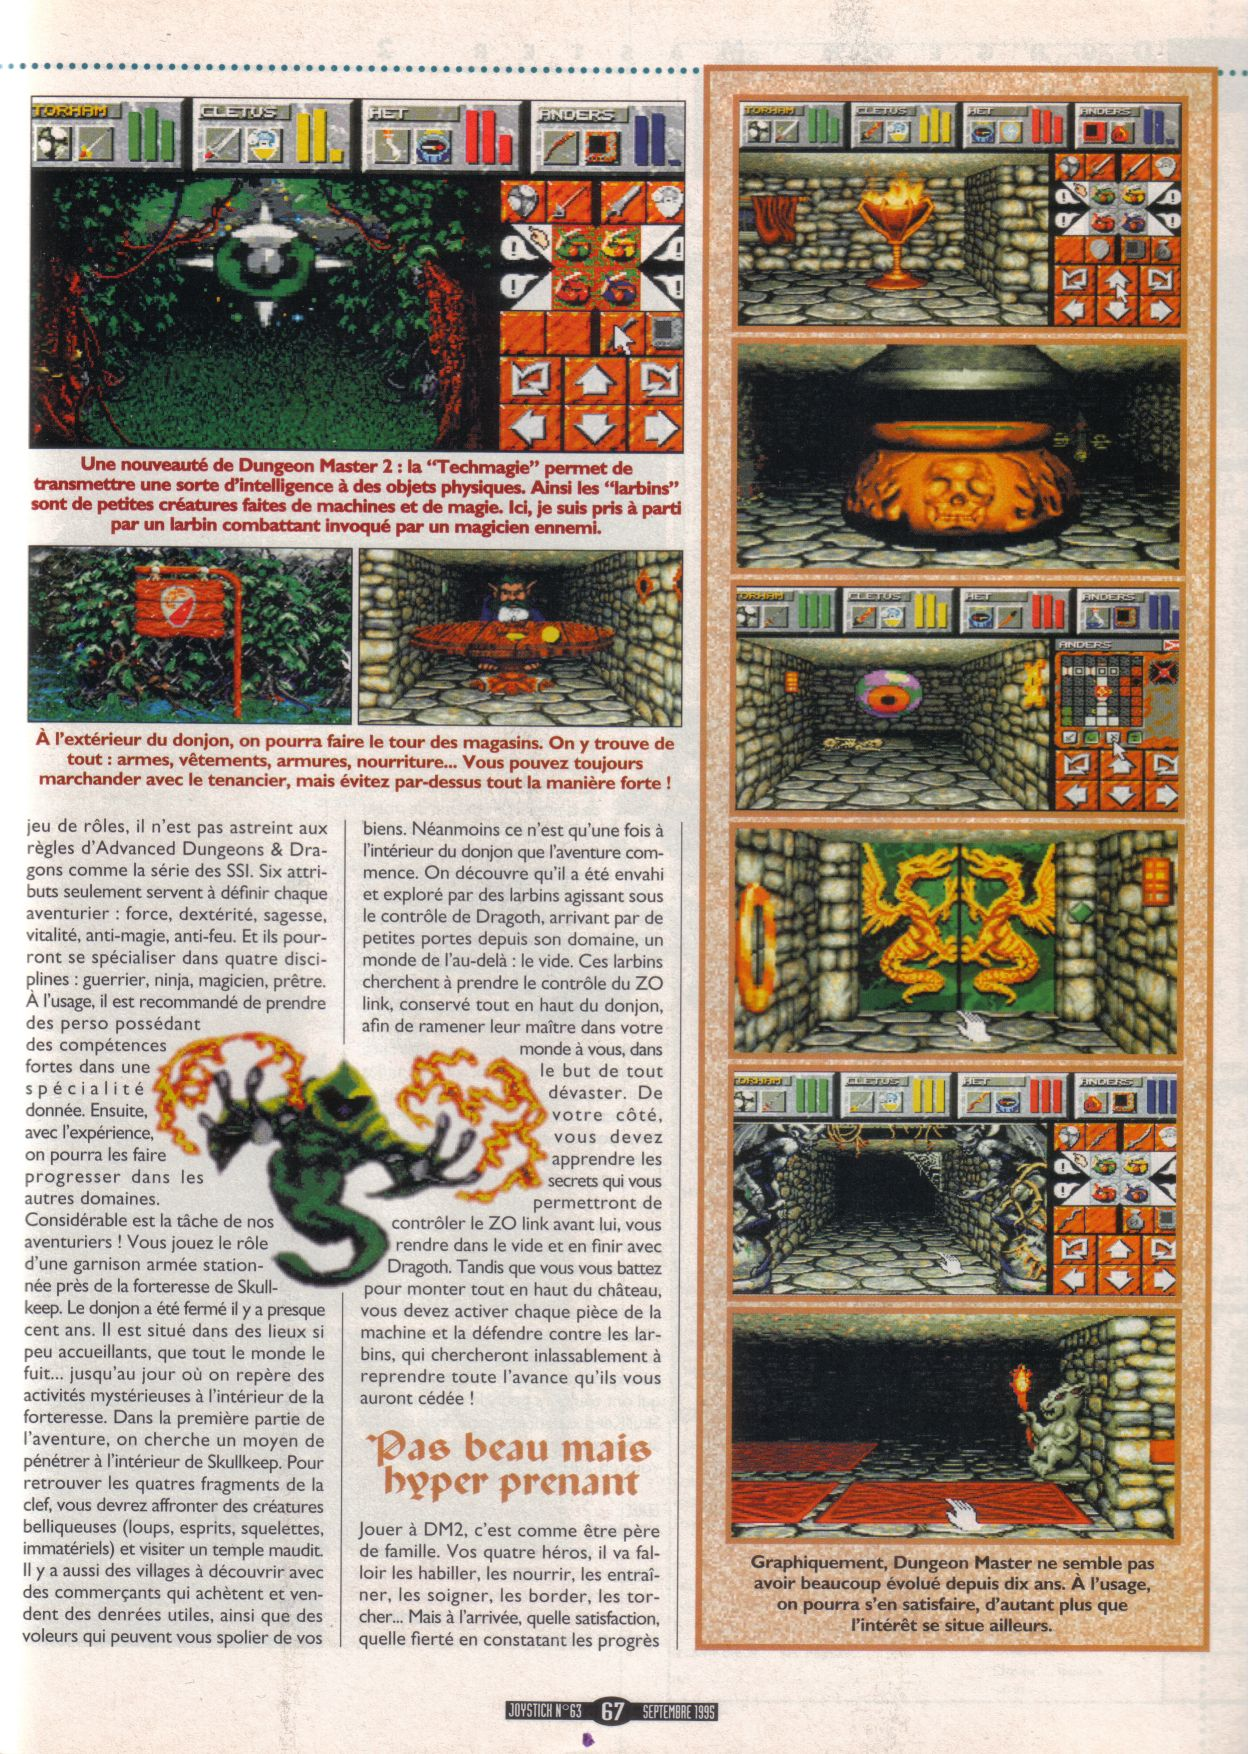 Dungeon Master II for PC Review published in French magazine 'Joystick', Issue #63, September 1995, Page 67